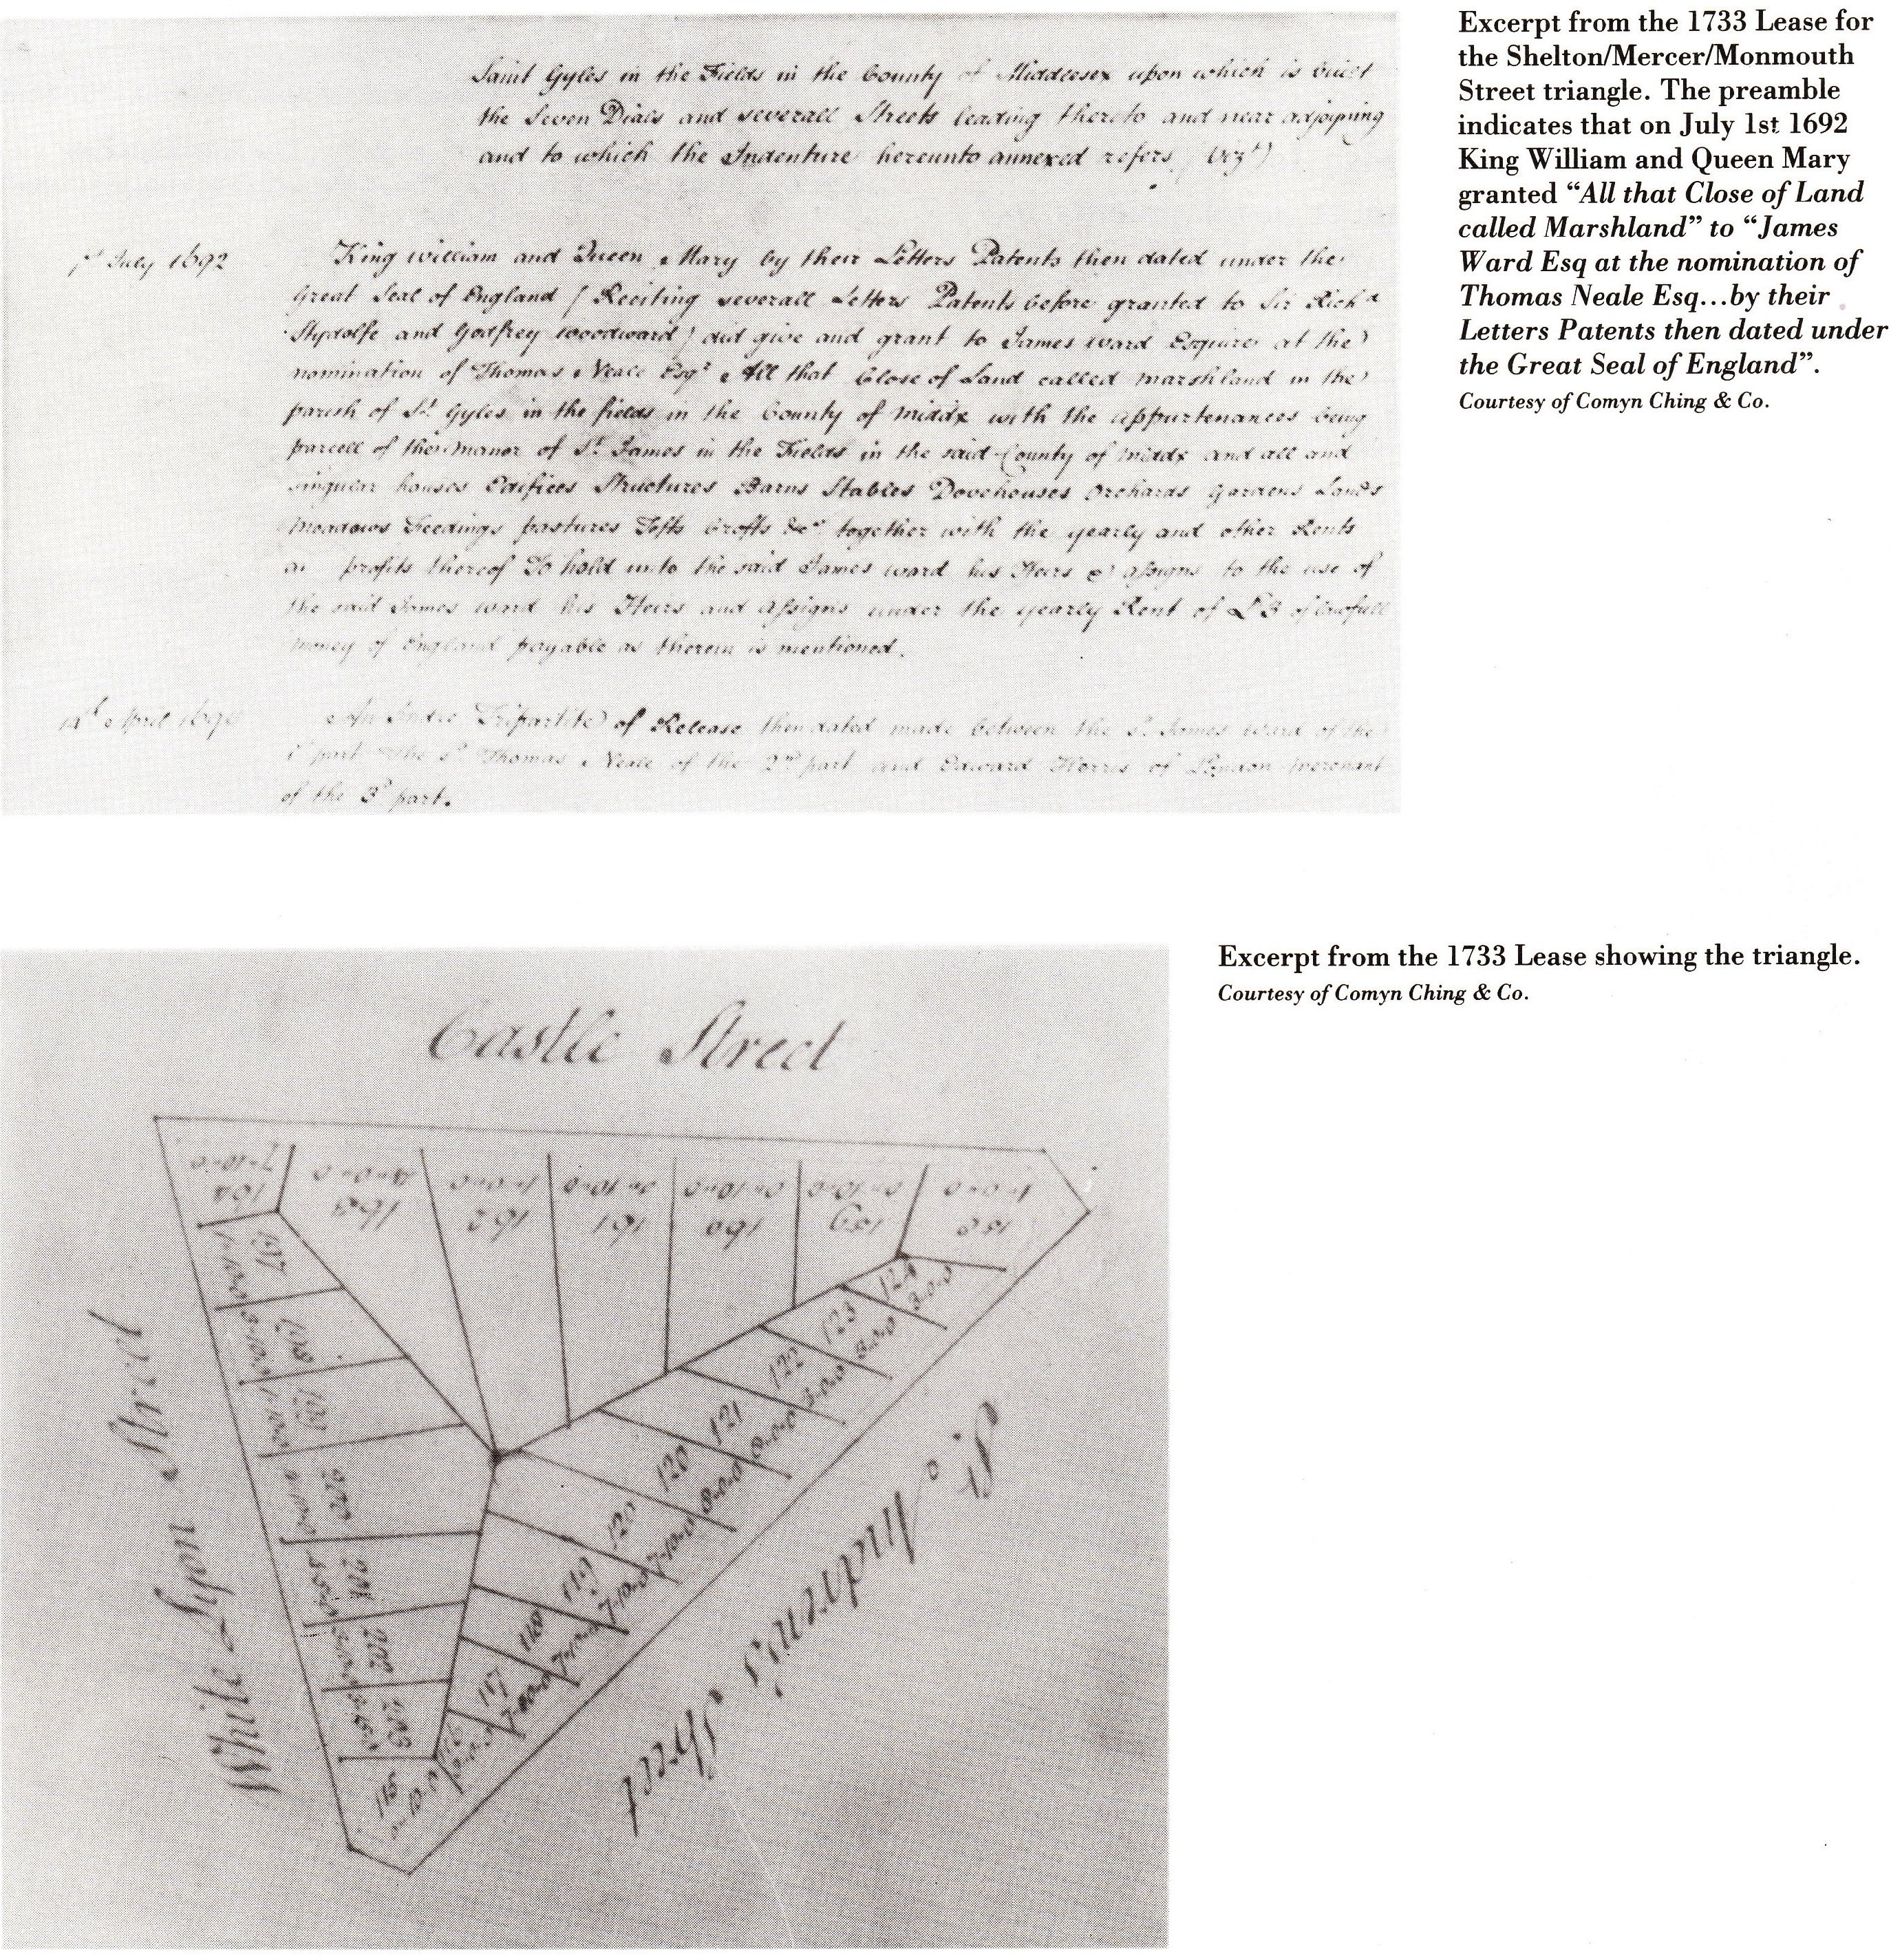 The Comyn Ching Triangle lease granted in 1692 by King William and Queen Mary to James Ward on the nomination of Thomas Neale.